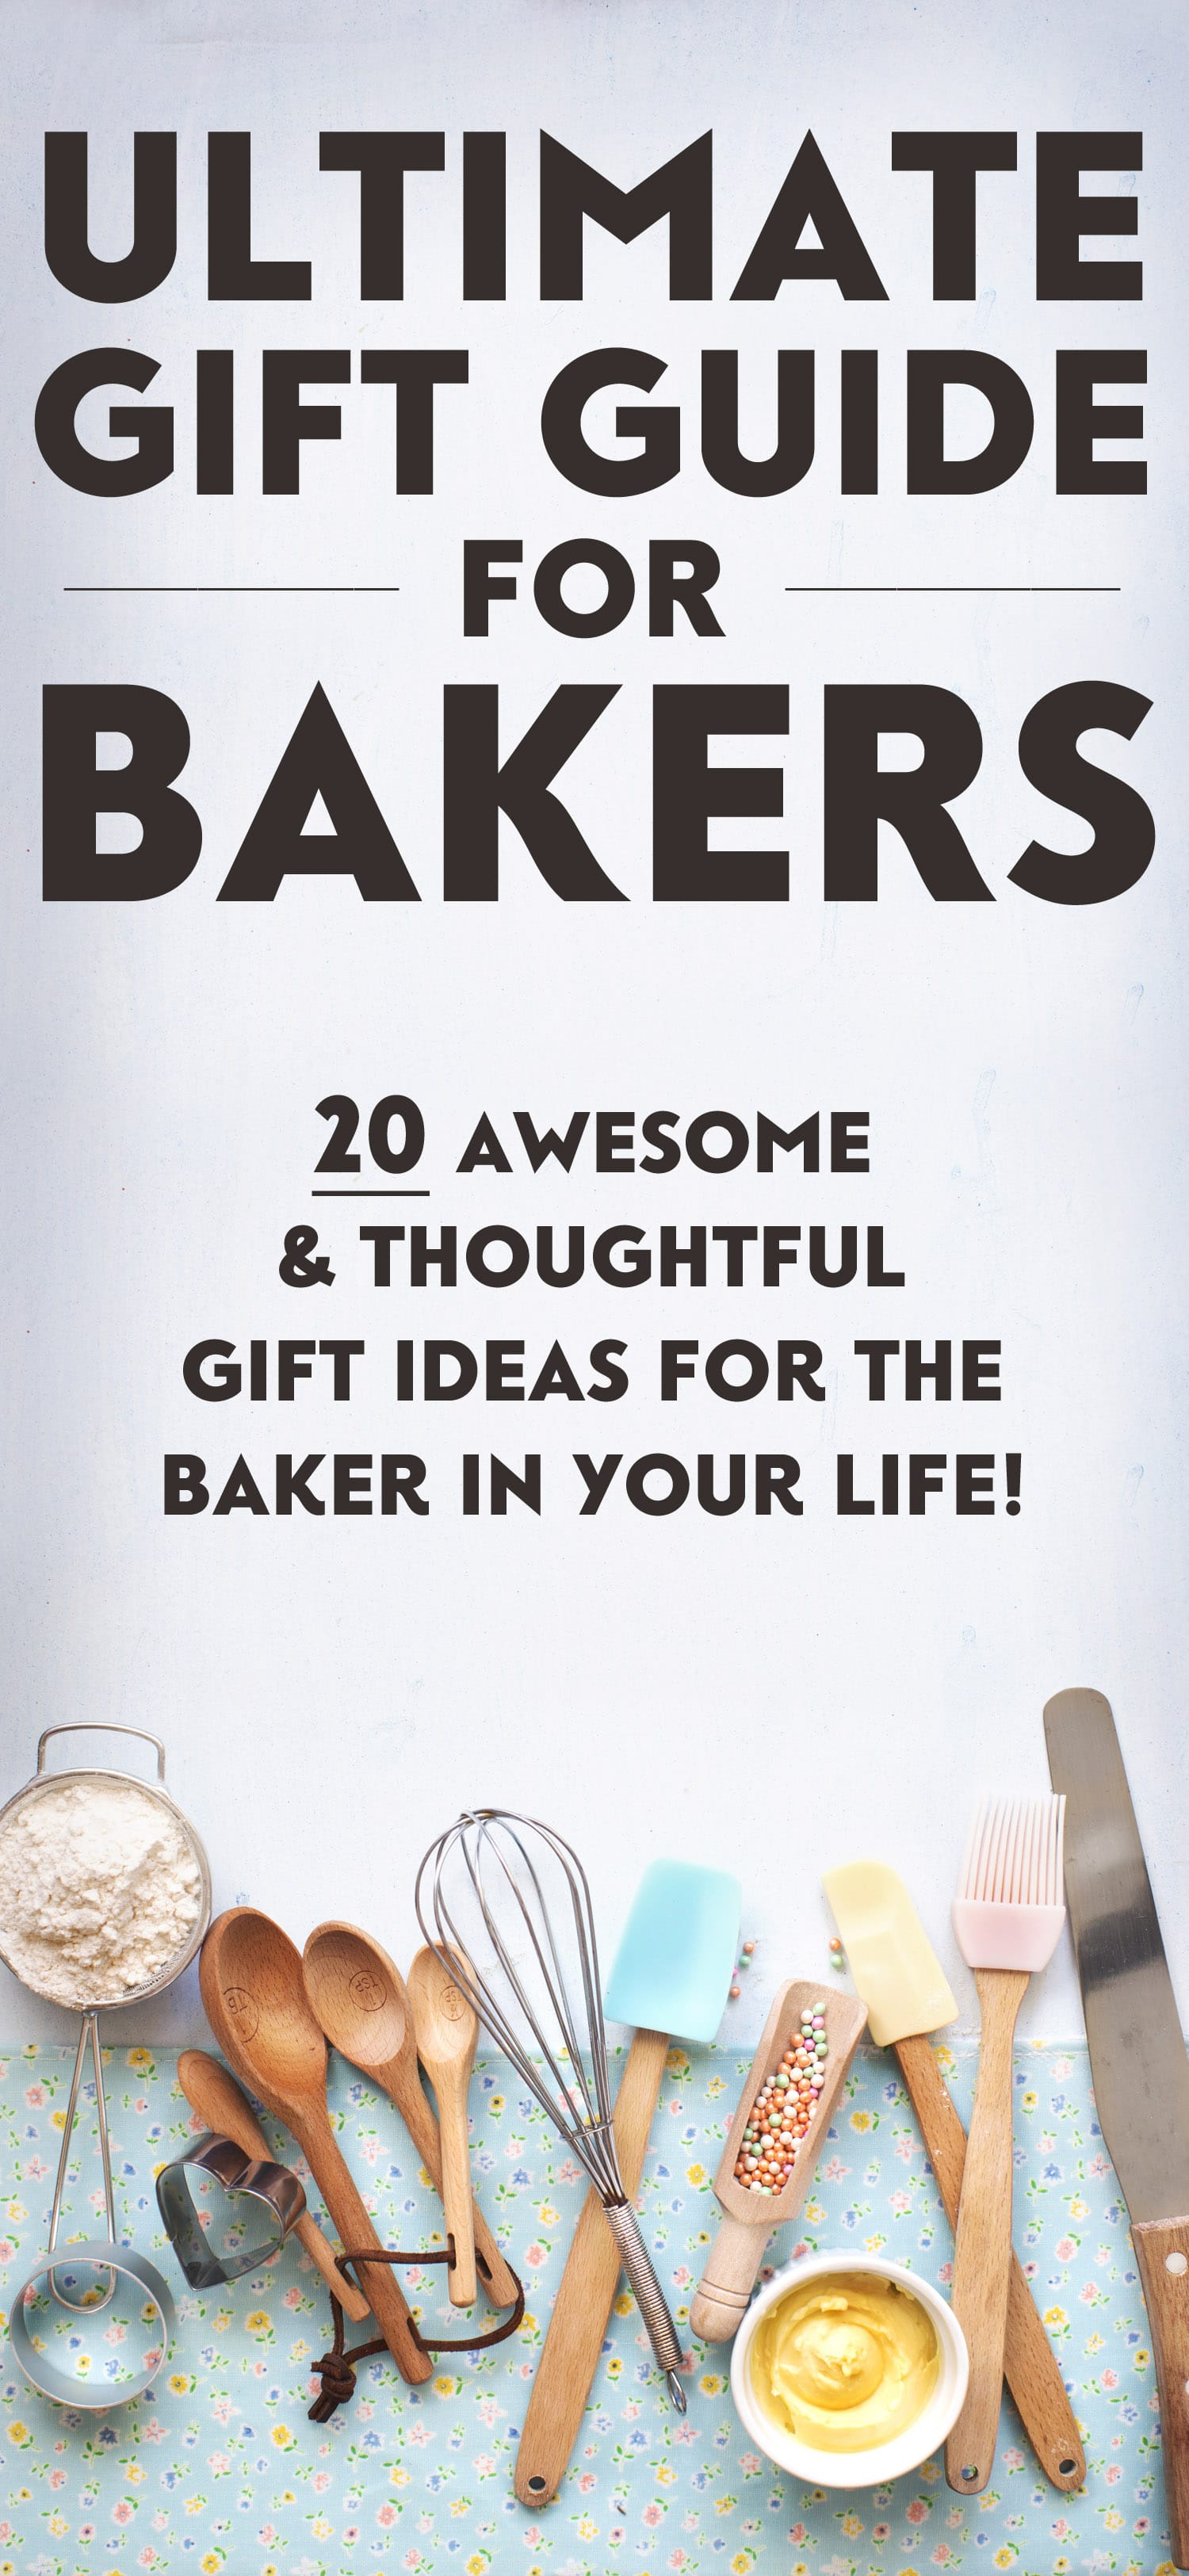 The ULTIMATE Foodie Gift Guide: 20 Awesome Gift Ideas for the Healthy Baker In Your Life! Unique, creative, and thoughtful gift ideas from ingredients to products to appliances to bakeware and more. Healthy Dessert Recipes at the Desserts With Benefits Blog (www.DessertsWithBenefits.com)